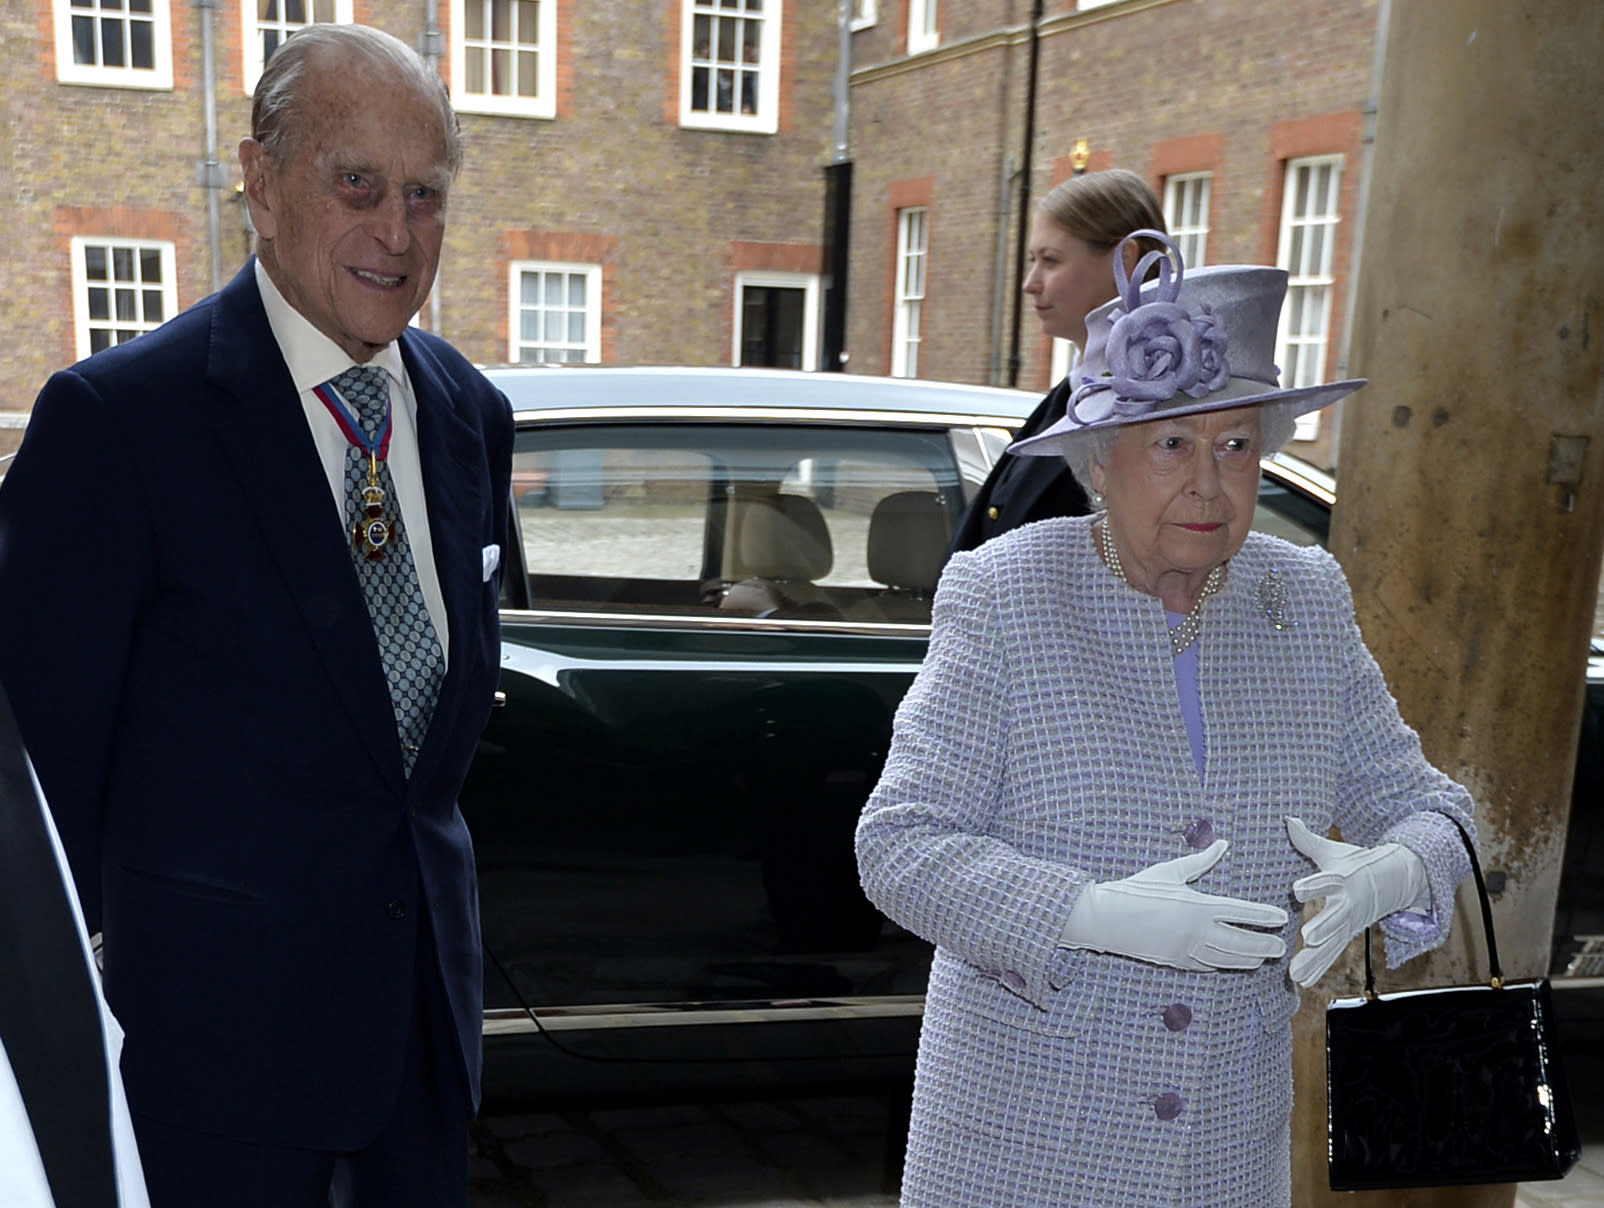 Britain's Queen Elizabeth, right, and  Prince Philip, the Duke of Edinburgh arrive at Chapel Royal in St James's Palace, London, for an Order of Merit service, Thursday May 4, 2017. Prince Philip, the consort known for his constant support of his wife Queen Elizabeth II as well as for his occasional gaffes, will retire from royal duties this fall, Buckingham Palace said Thursday. (John Stillwell/Pool Photo via AP)